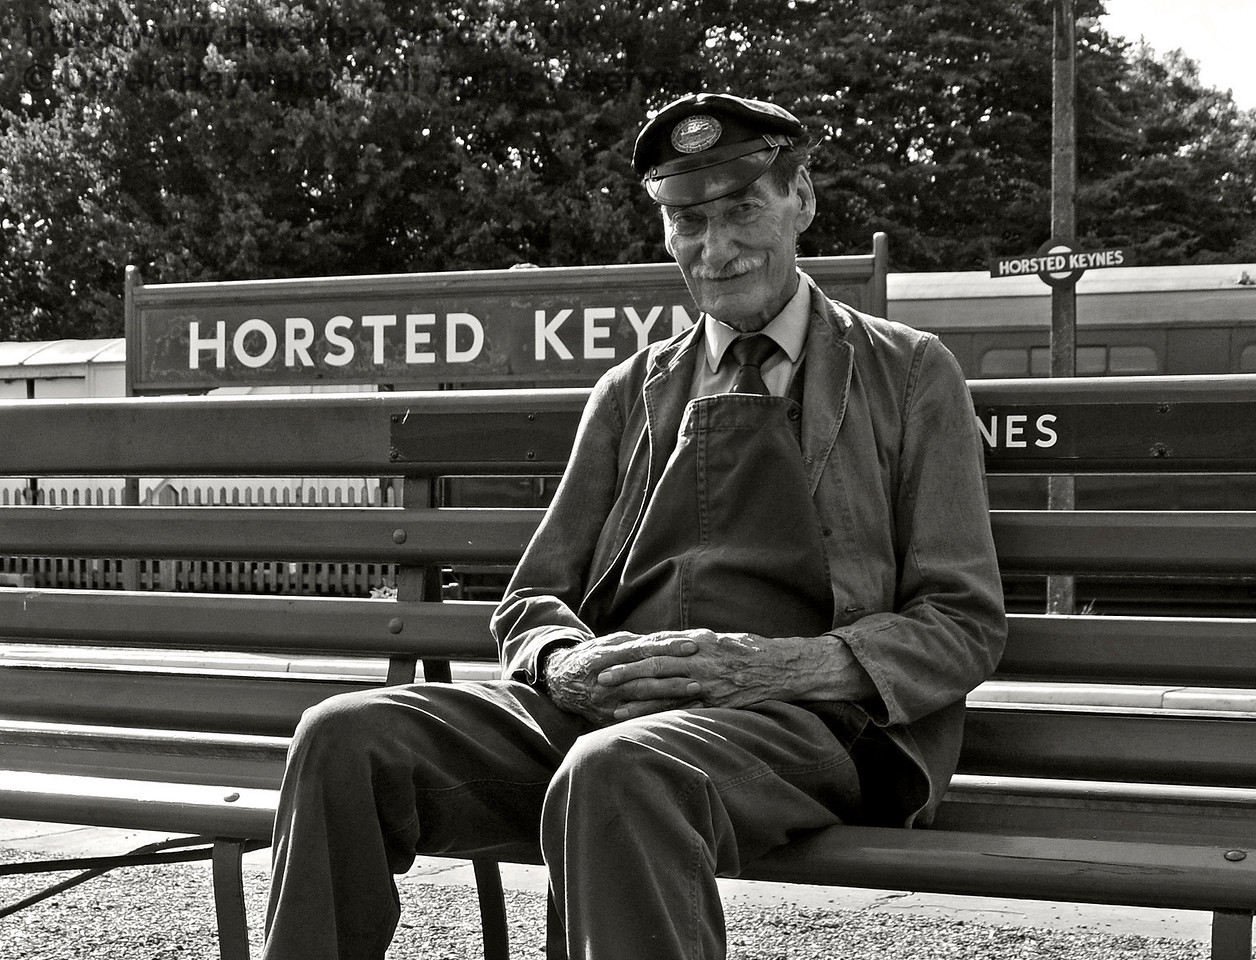 Clive Groome taking a break at Horsted Keynes. 06.08.2017 17620